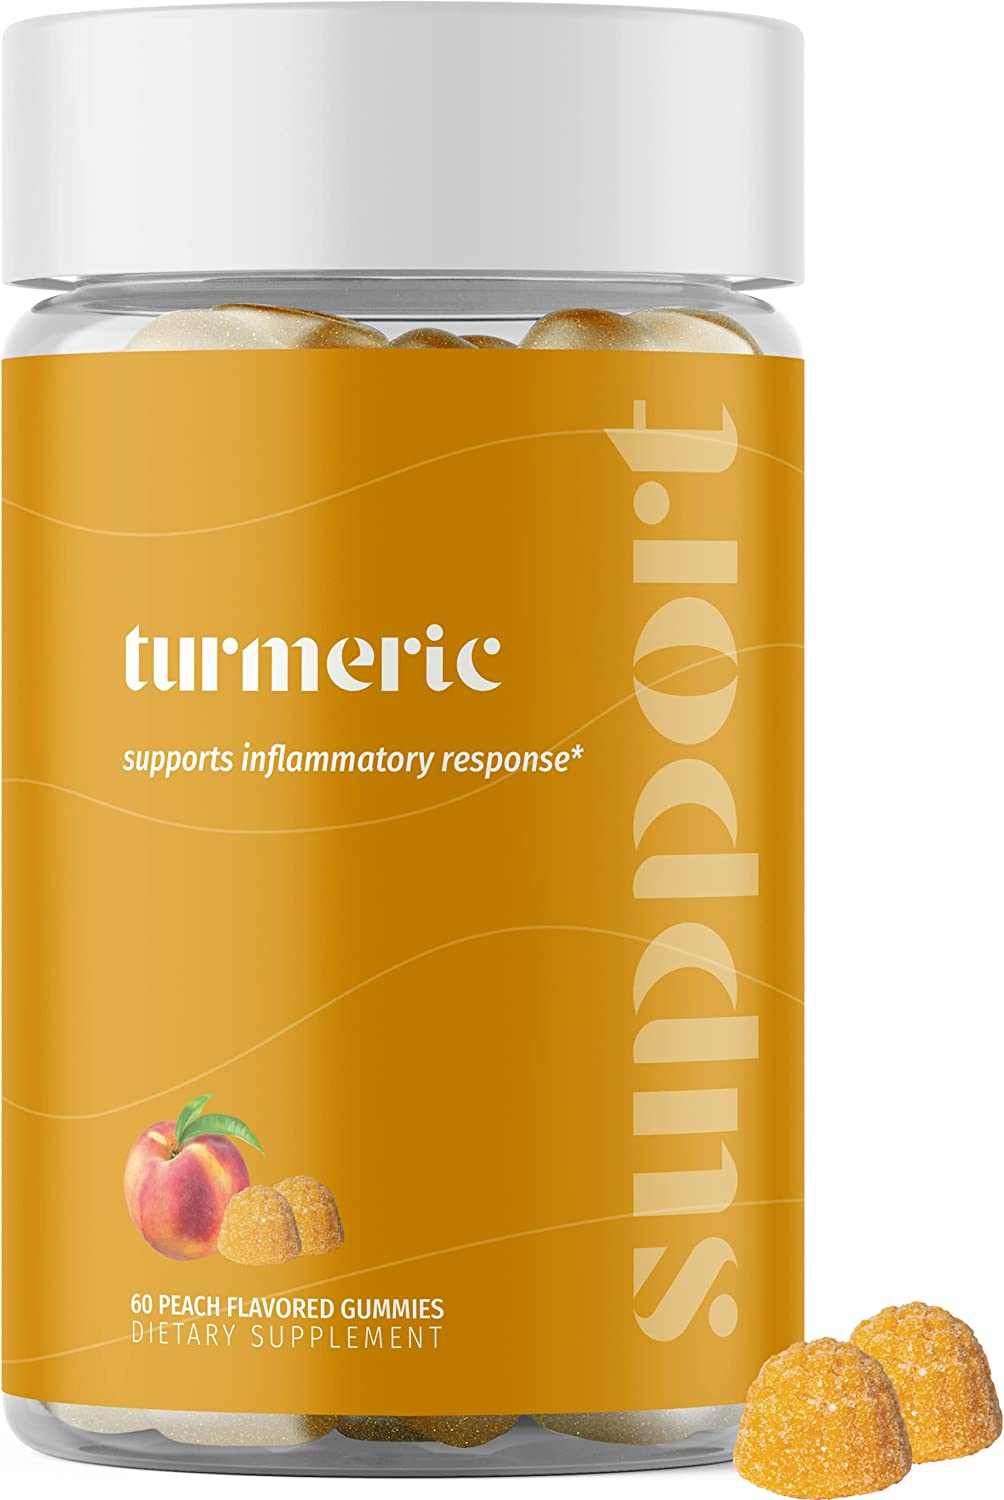 Turmeric and Ginger Gummies with Black Extract Pepper shopping Natural Excellent